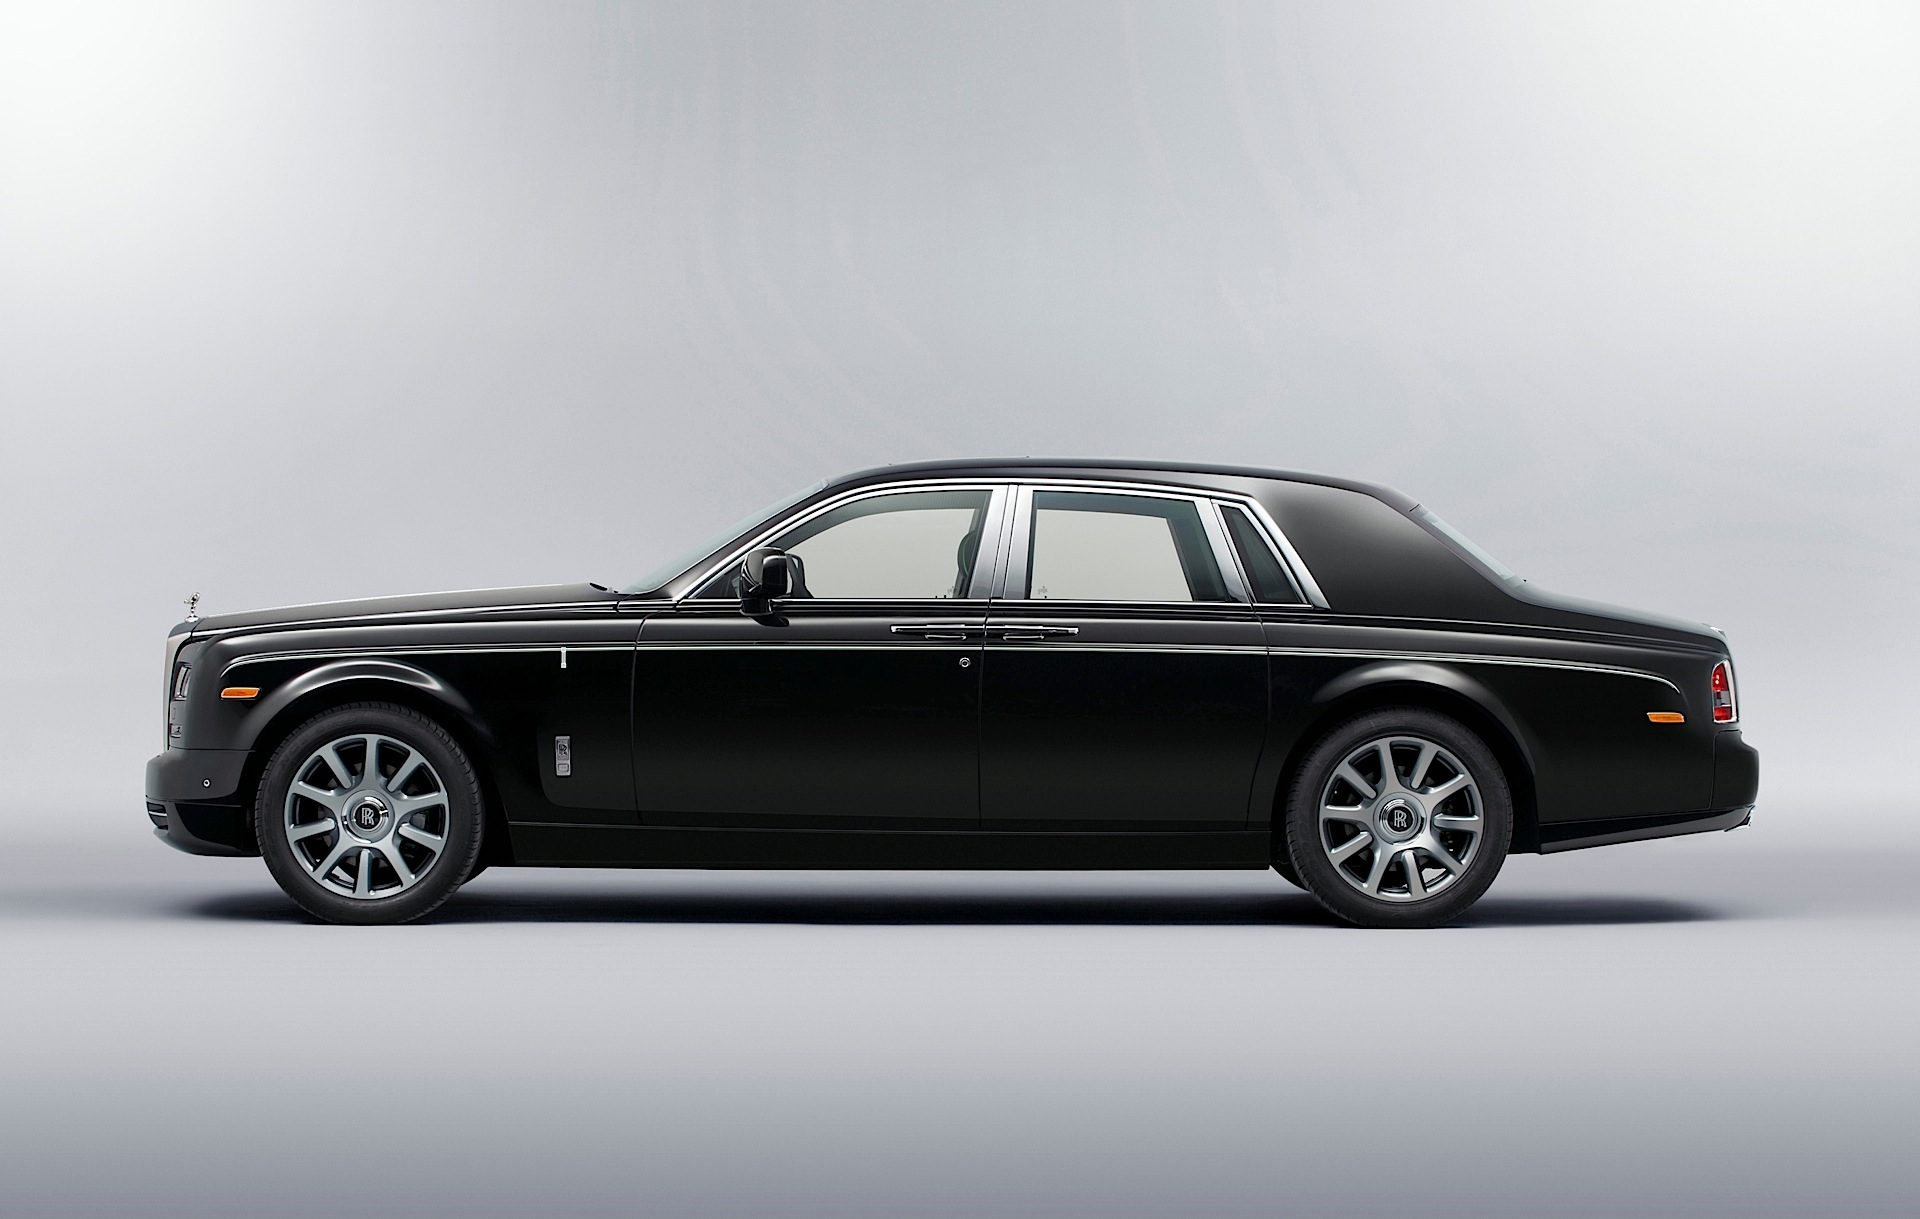 rolls royce phantom 2003 2004 2005 2006 2007 2008 2009 2010 2011 2012 2013 2014. Black Bedroom Furniture Sets. Home Design Ideas